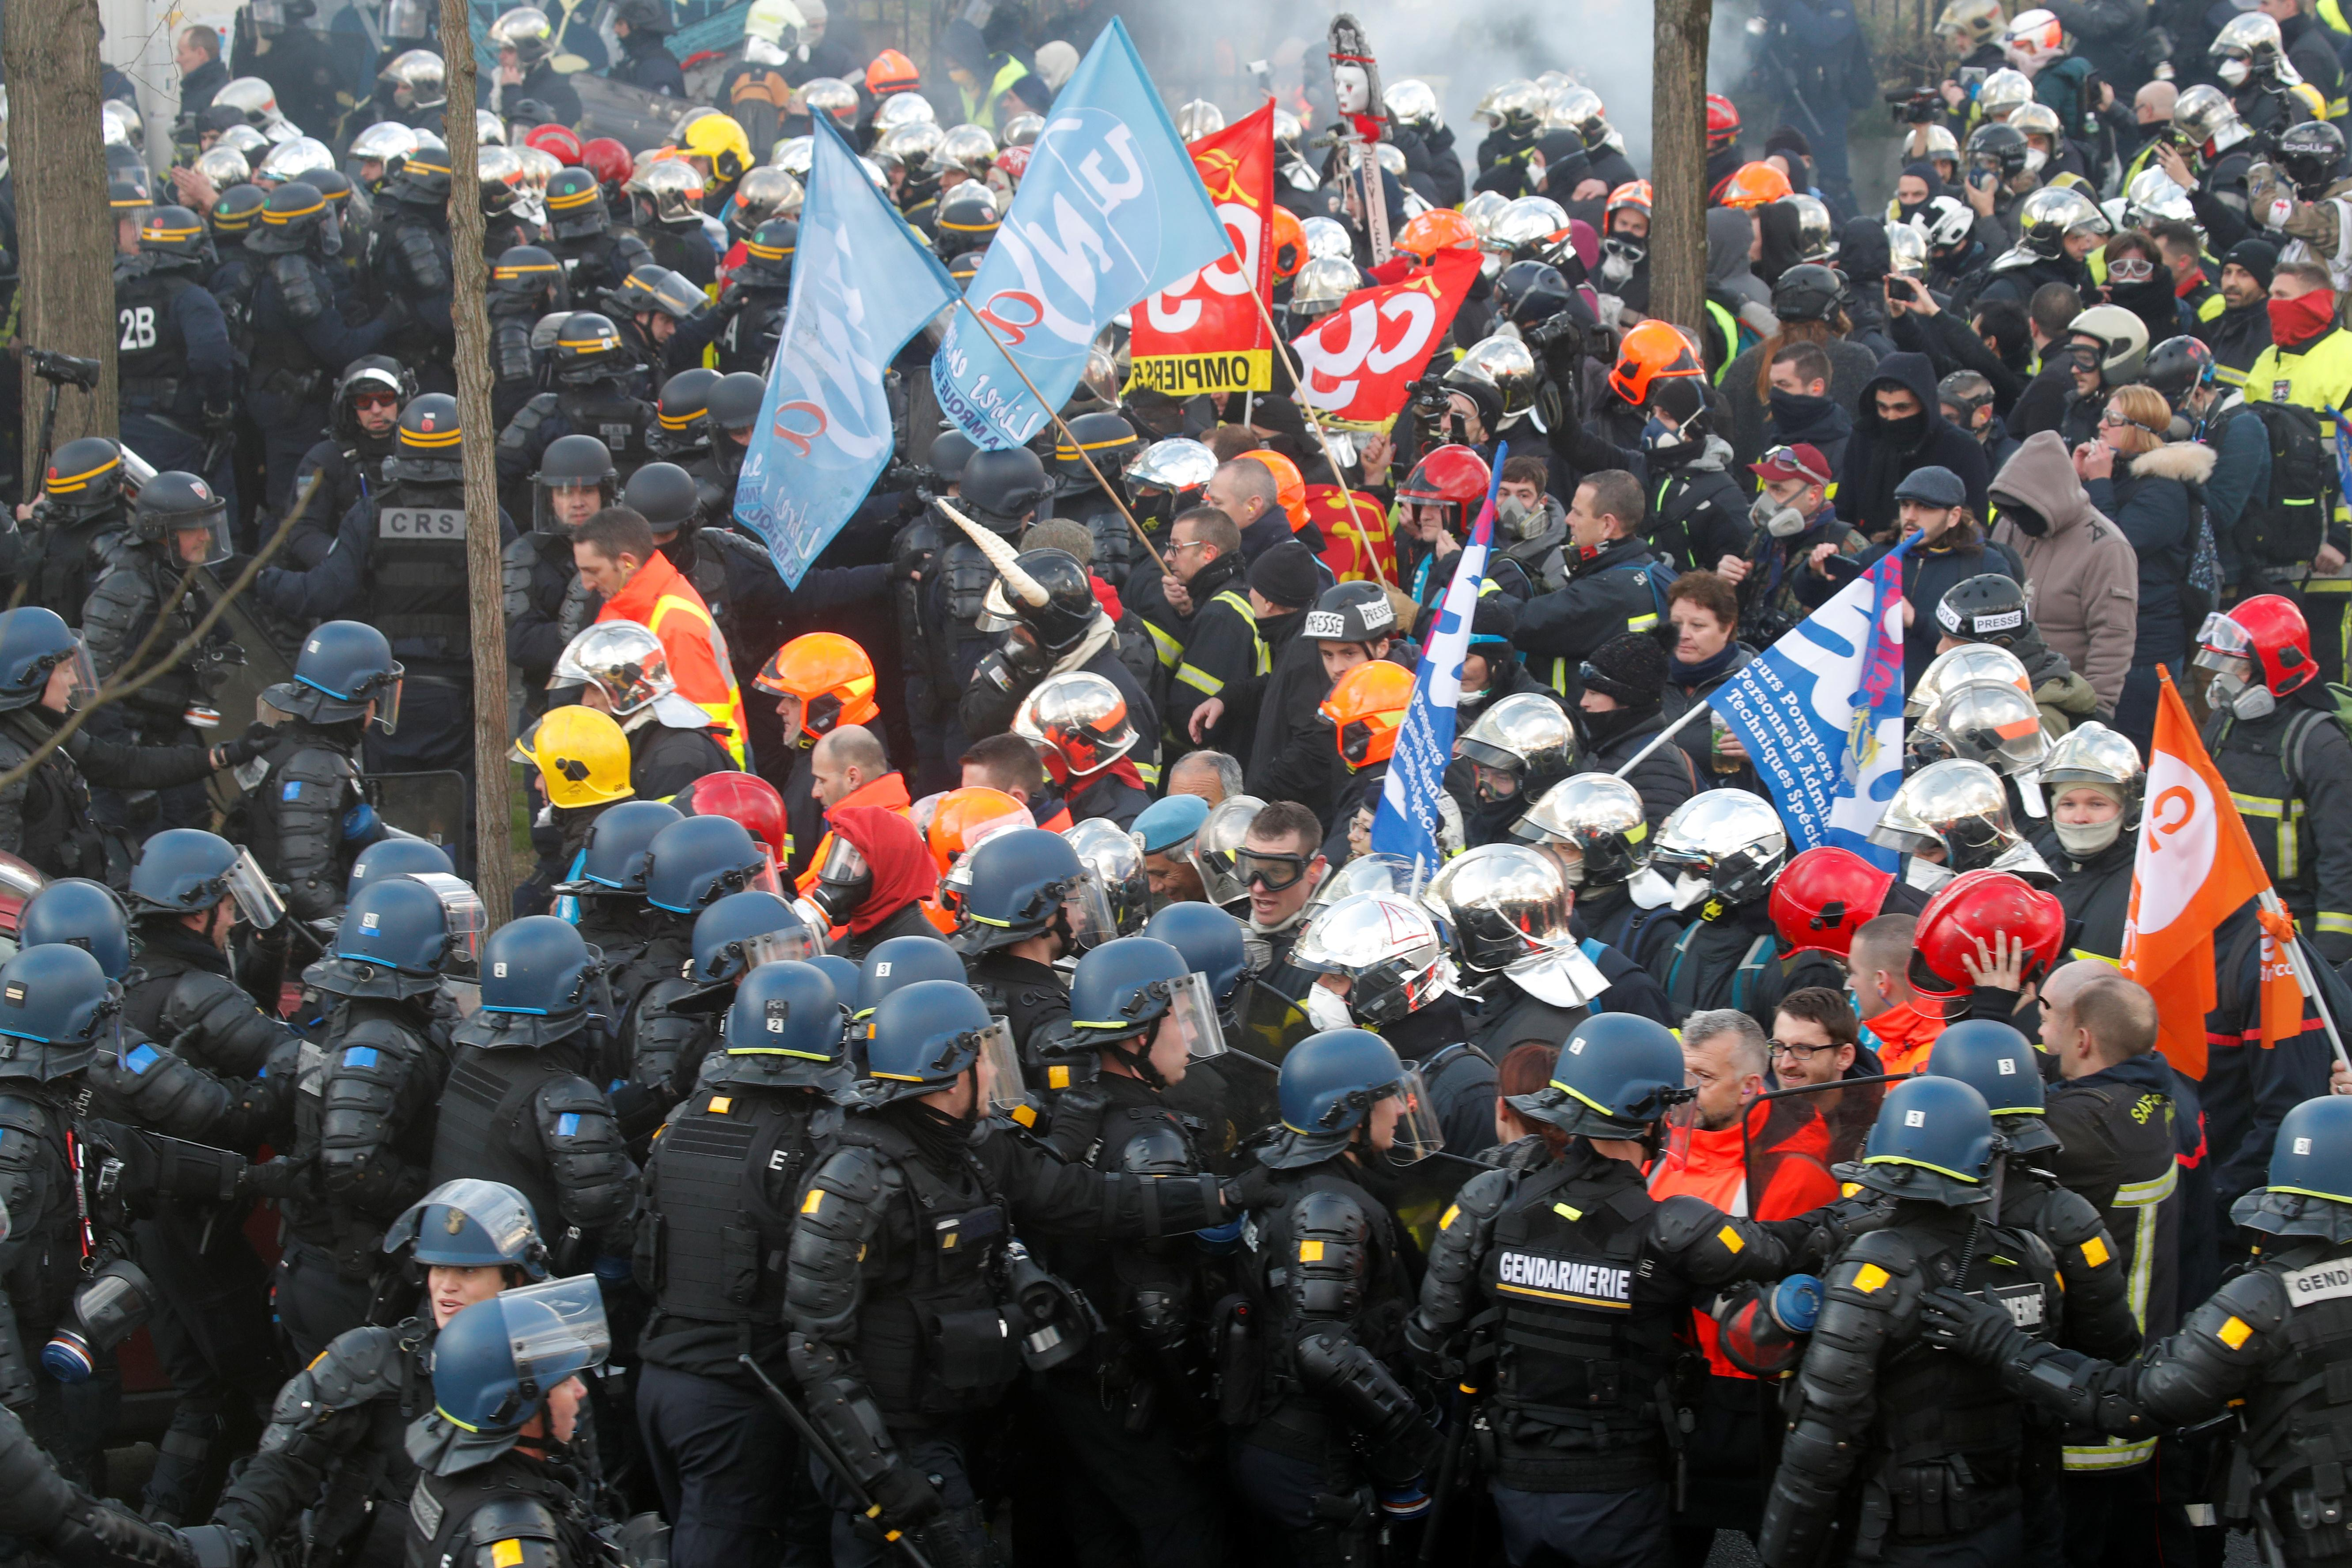 French police clash with firefighters at Paris demonstration